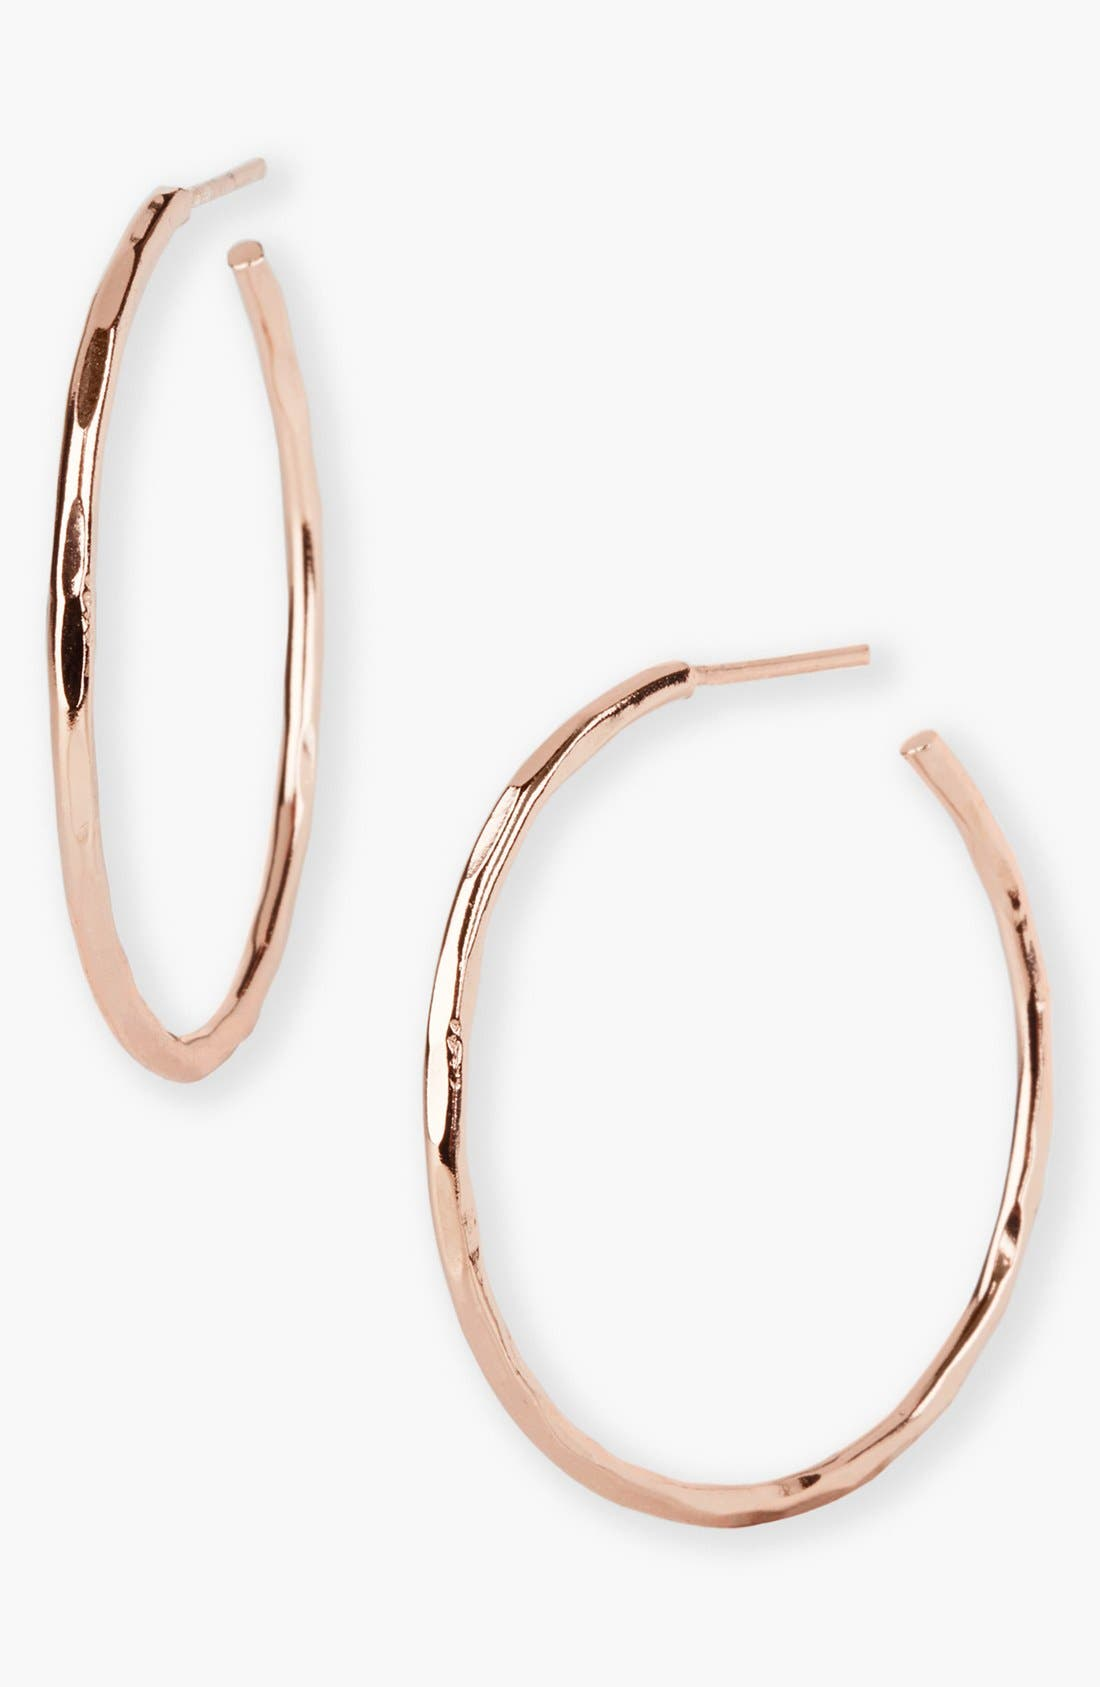 Main Image - Argento Vivo Medium Hammered Hoop Earrings